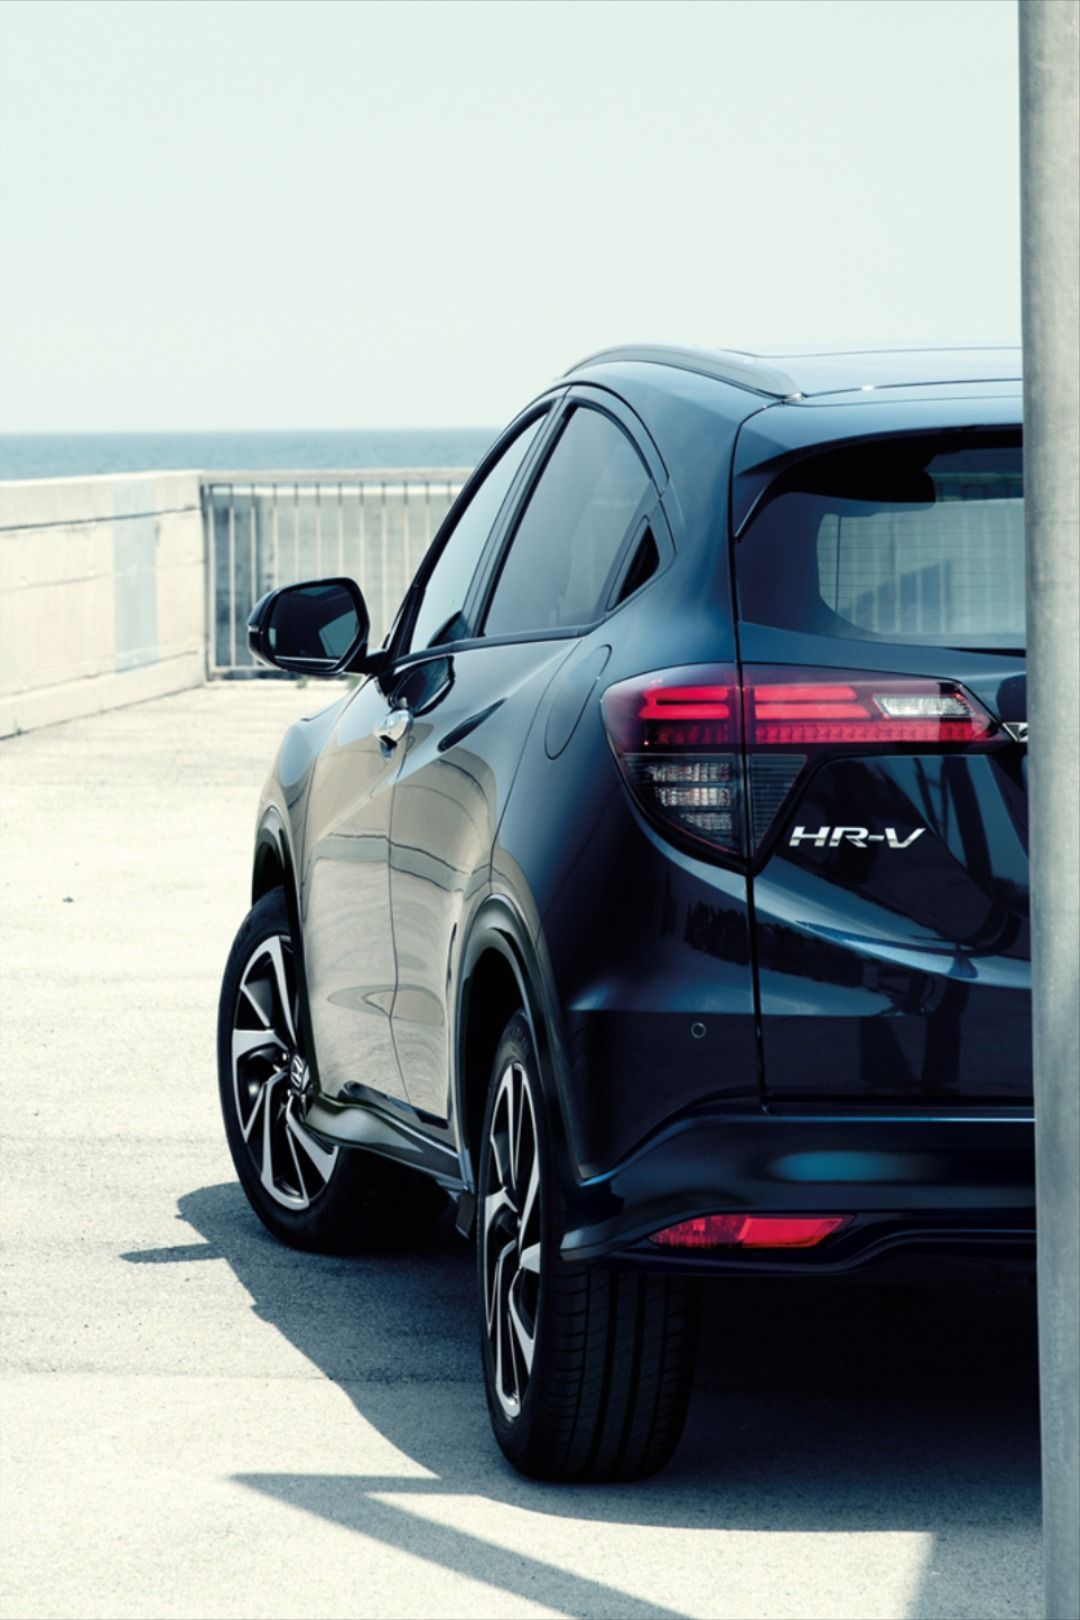 Honda Hr V Wallpapers In 2020 Honda Hrv Honda Motor Car